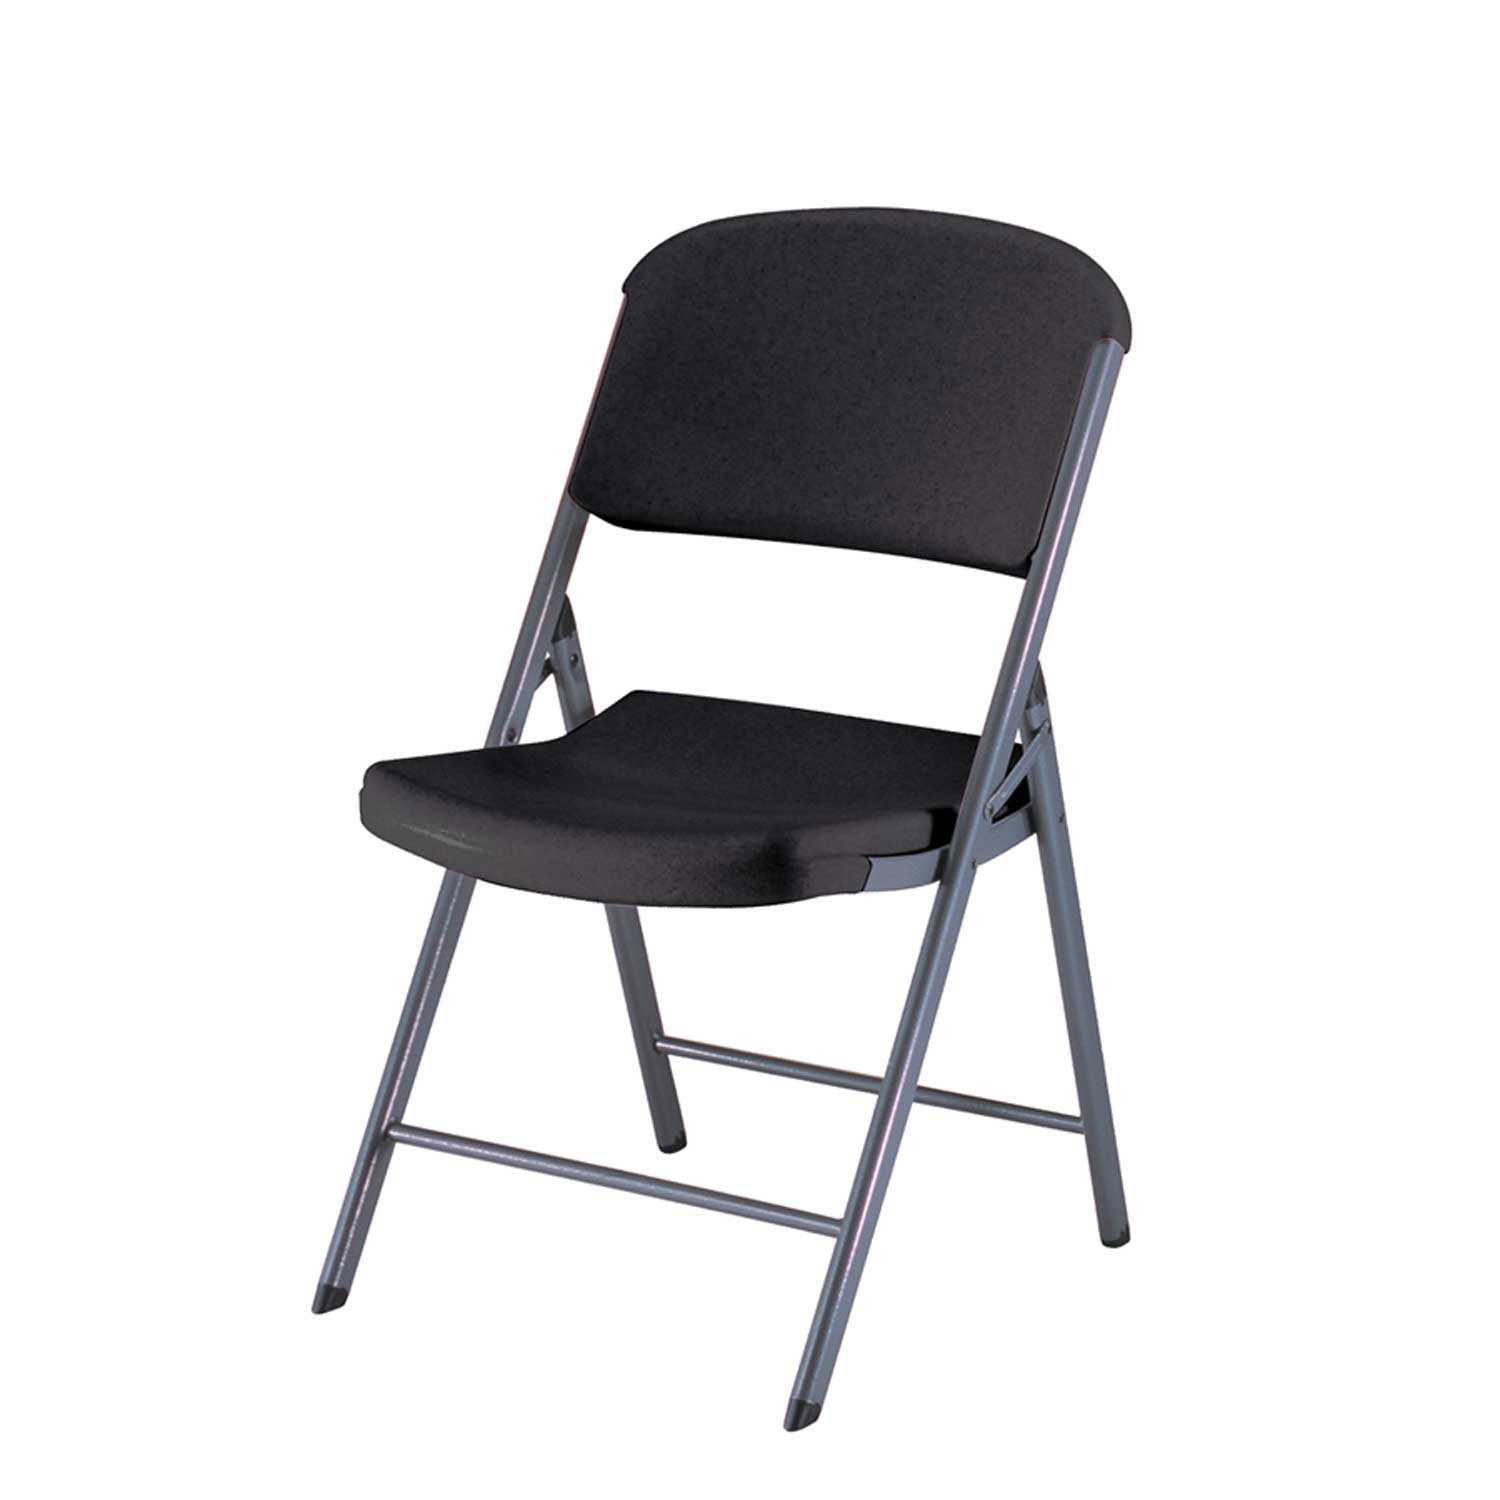 Luxury Folding Chairs for Sale In Bulk Beautiful